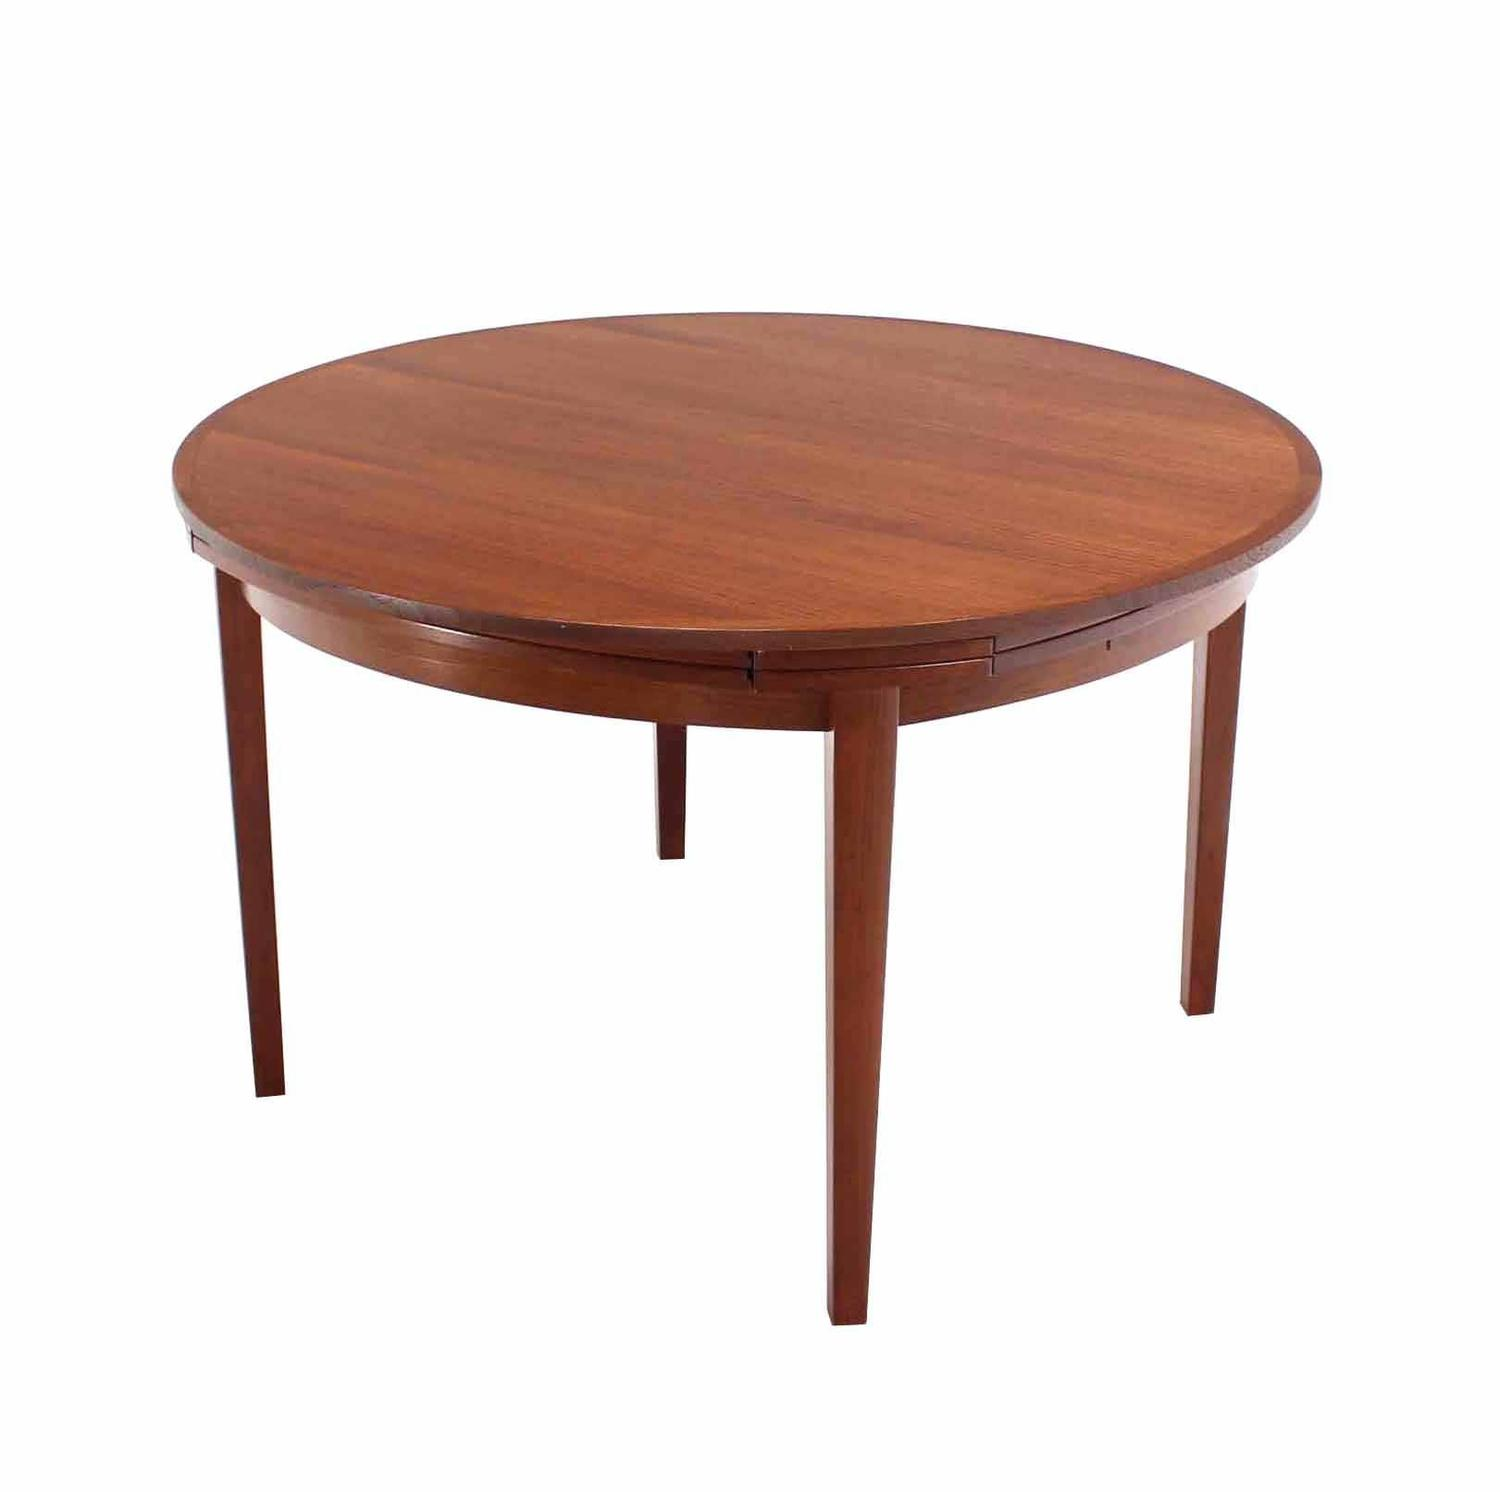 Rare danish modern teak round expandable top dining table for Dining room furniture modern